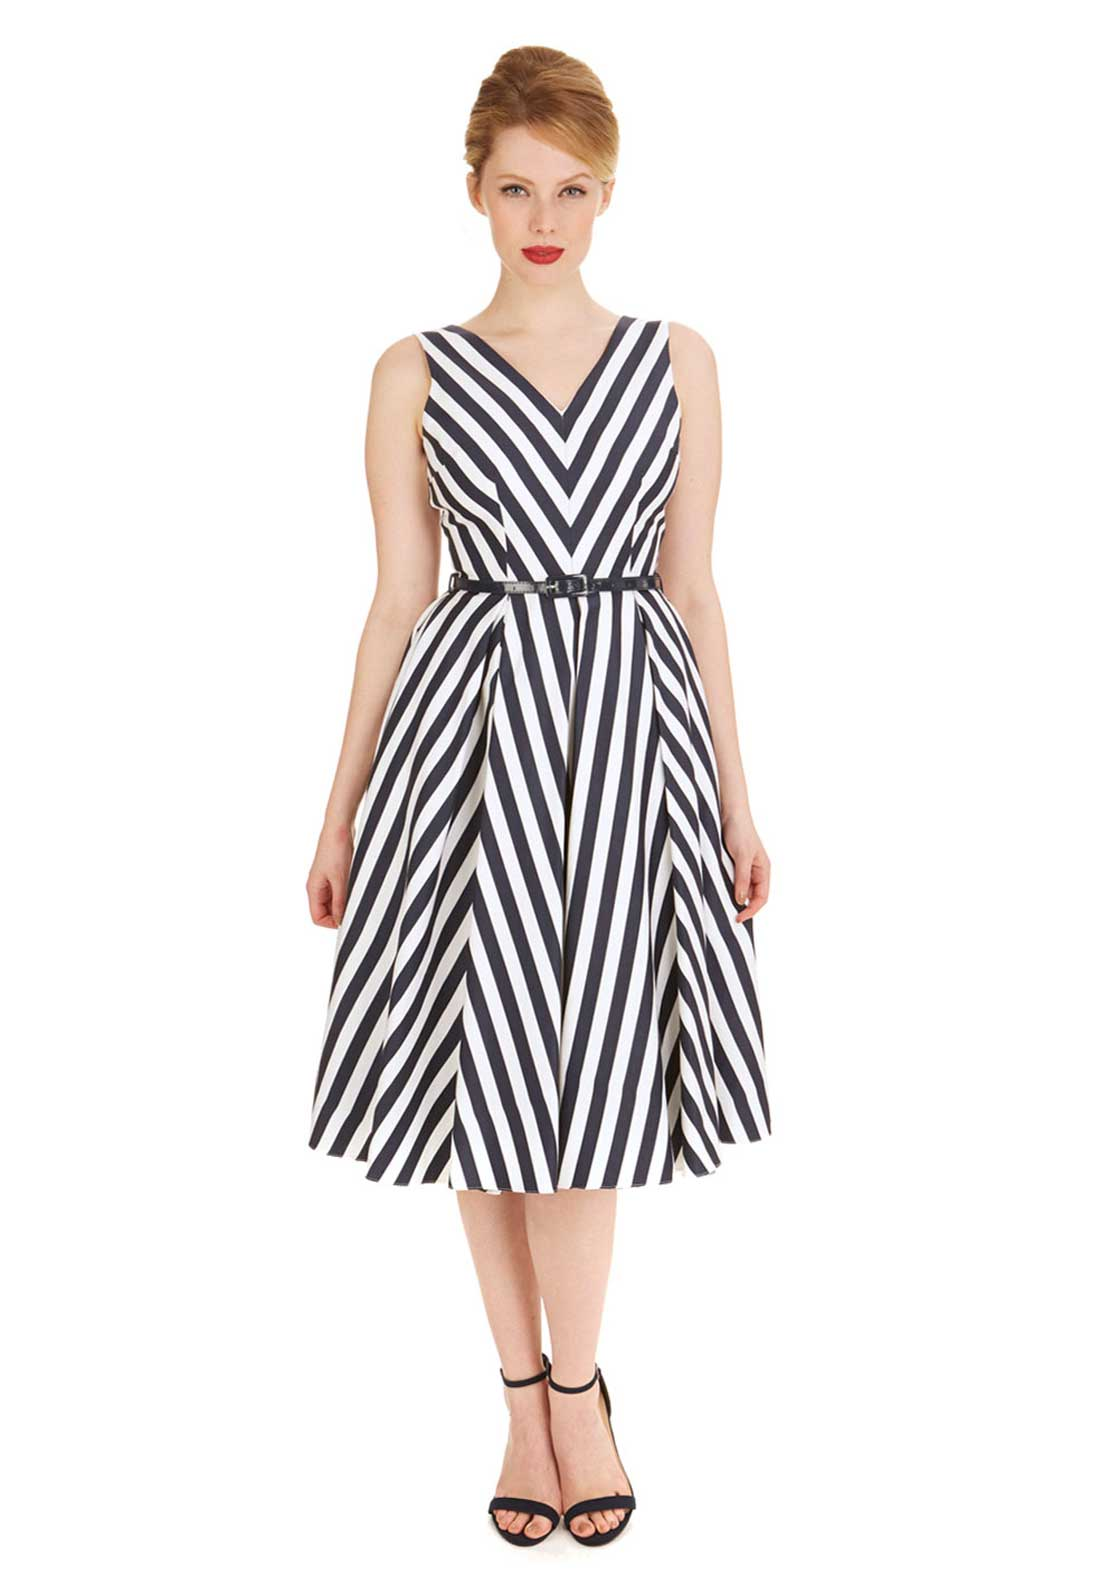 The Pretty Dress Company Ida Striped Fit and Flare Midi Dress, Navy and White